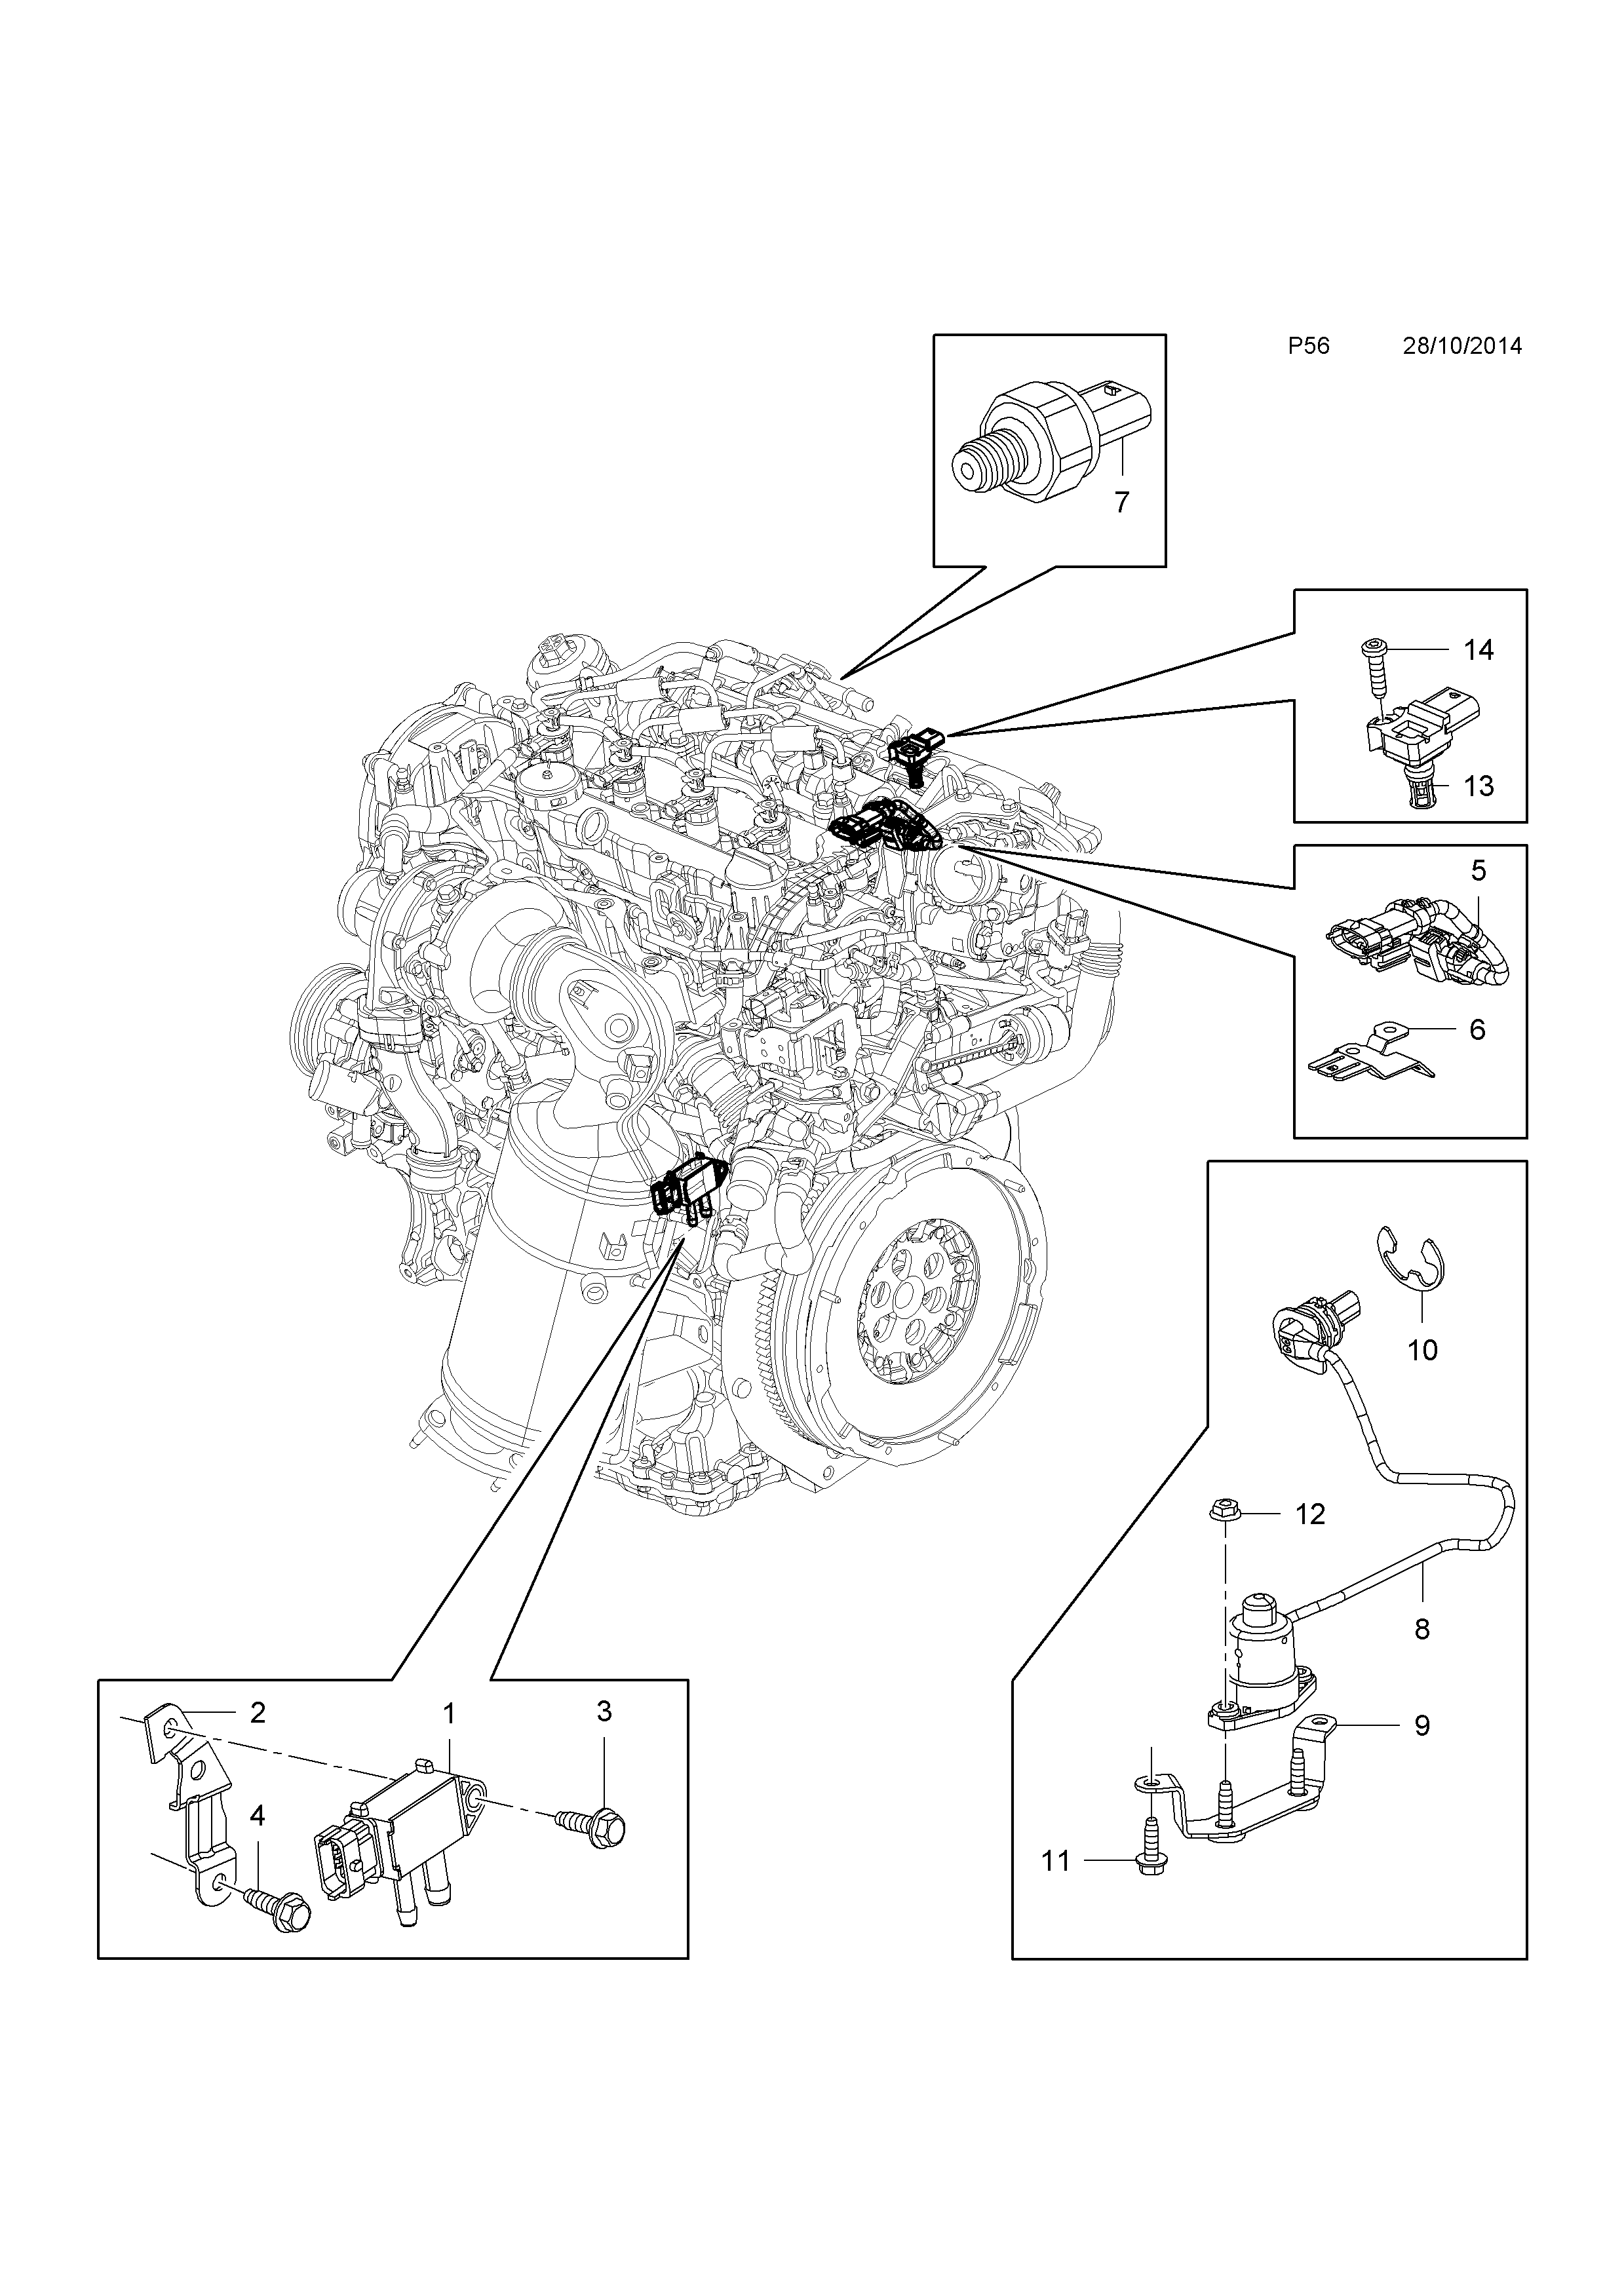 Opel Fuel Pressure Diagram Wiring Library Saturn Insignia 2009 P Electrical 1 Engine And Cooling 179 List Of Parts